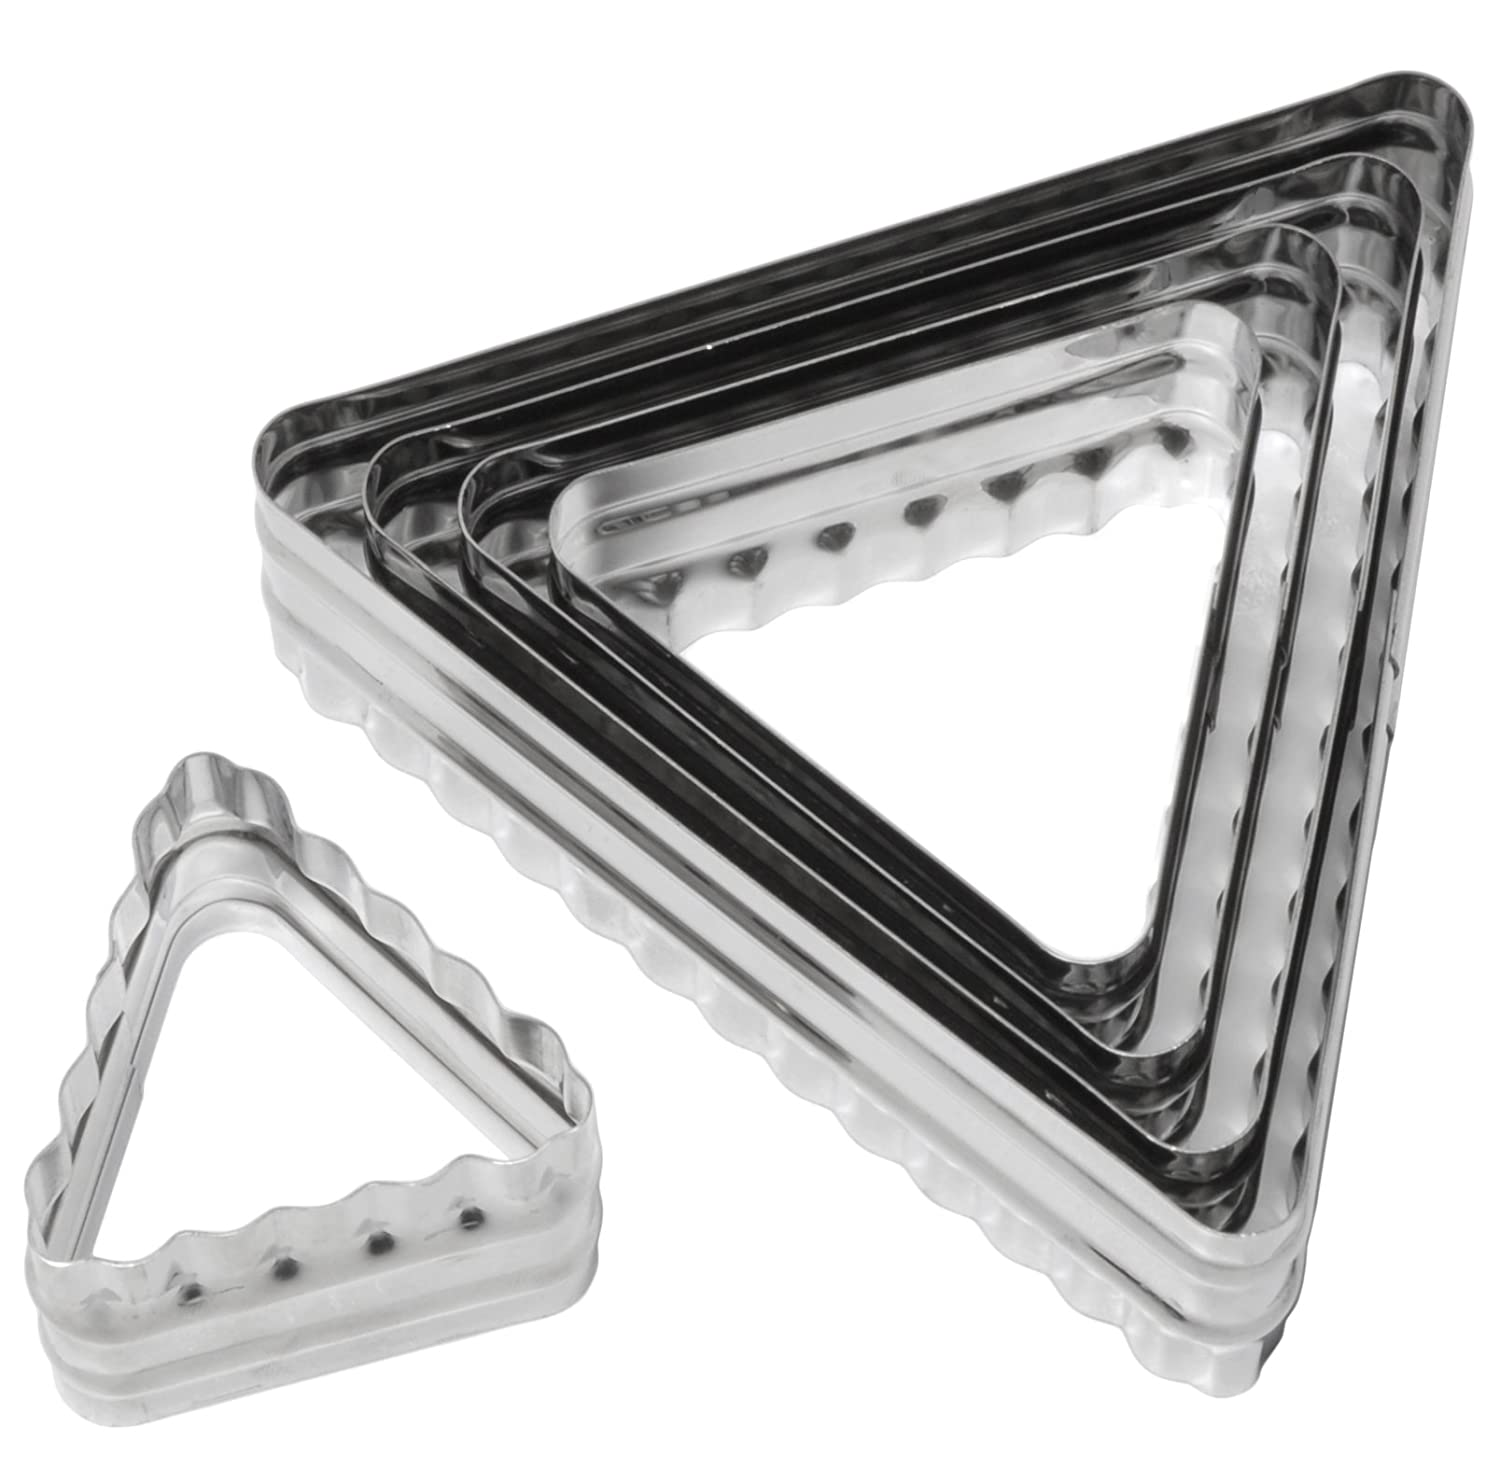 Ateco 52530 6-Piece Double Sided Square Cutter Set